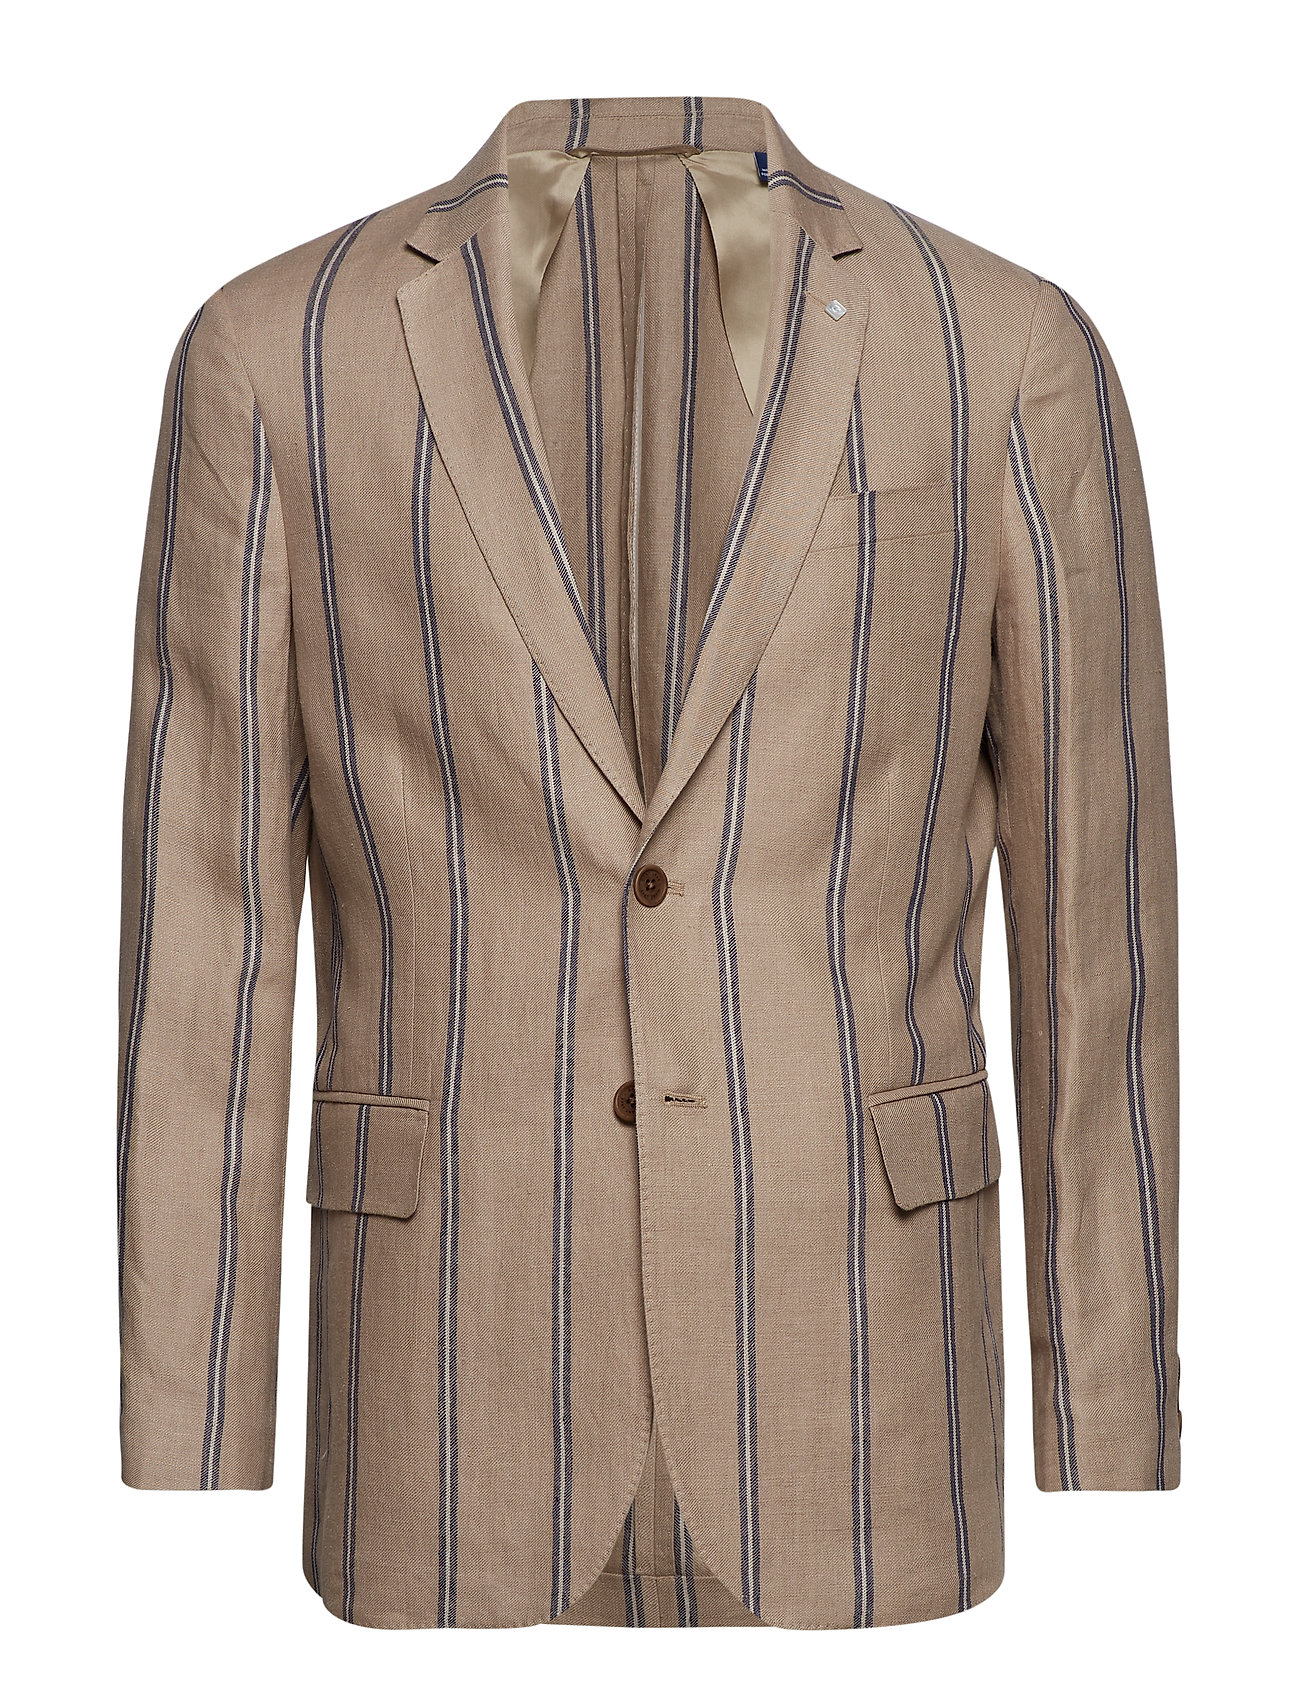 GANT O1. THE IVY STRIPE BLAZER